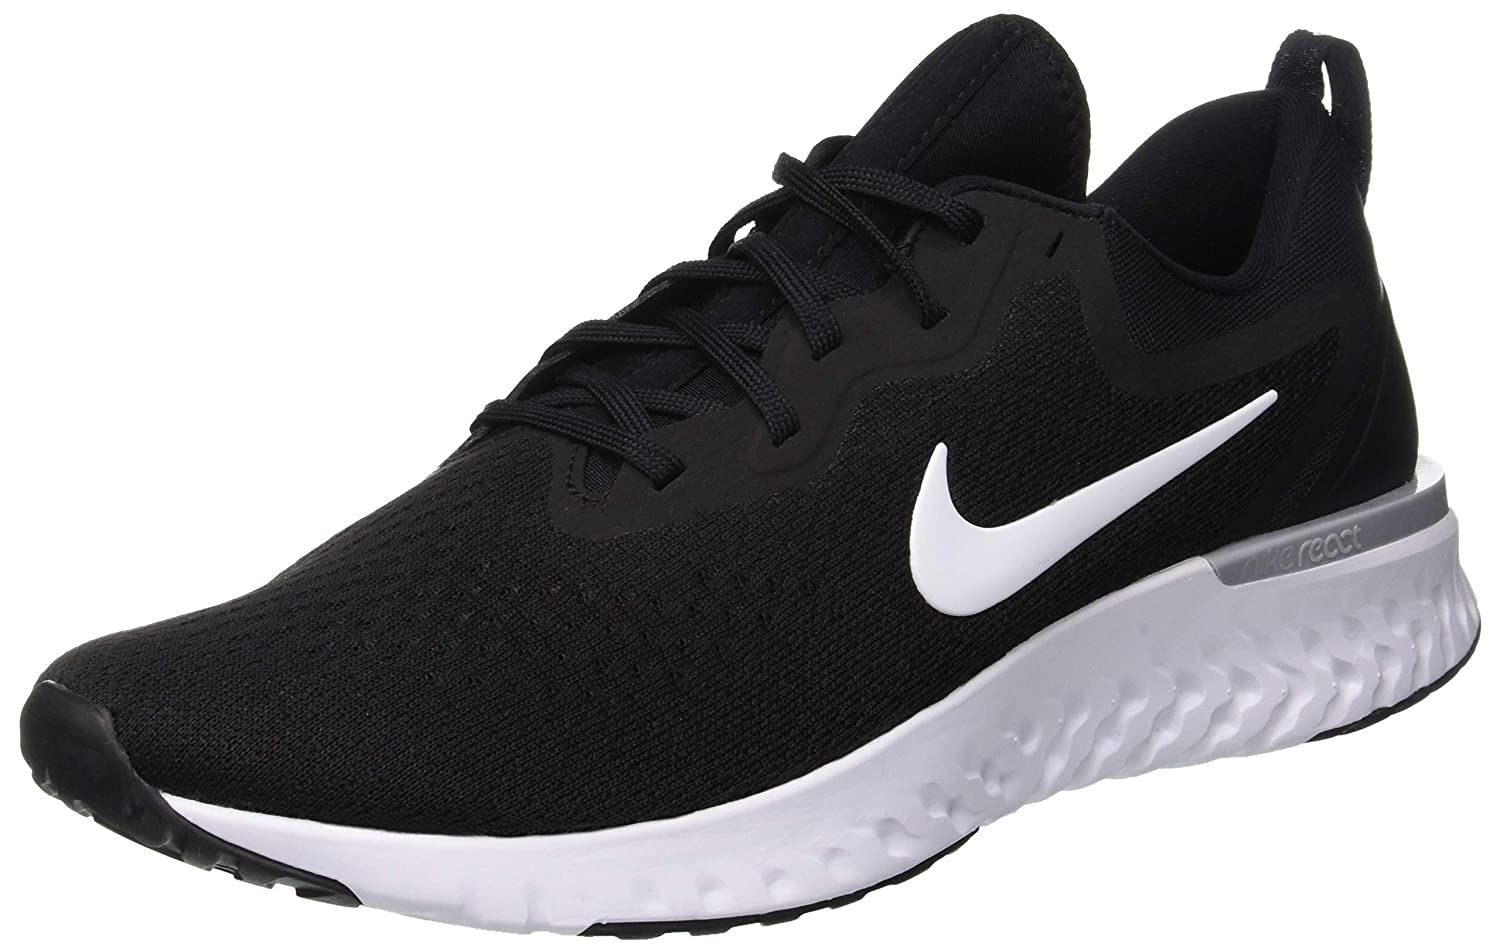 big sale f4324 25413 Nike Mens Herren Laufschuh Odyssey React Competition Running Shoes  Amazon.co.uk Shoes  Bags